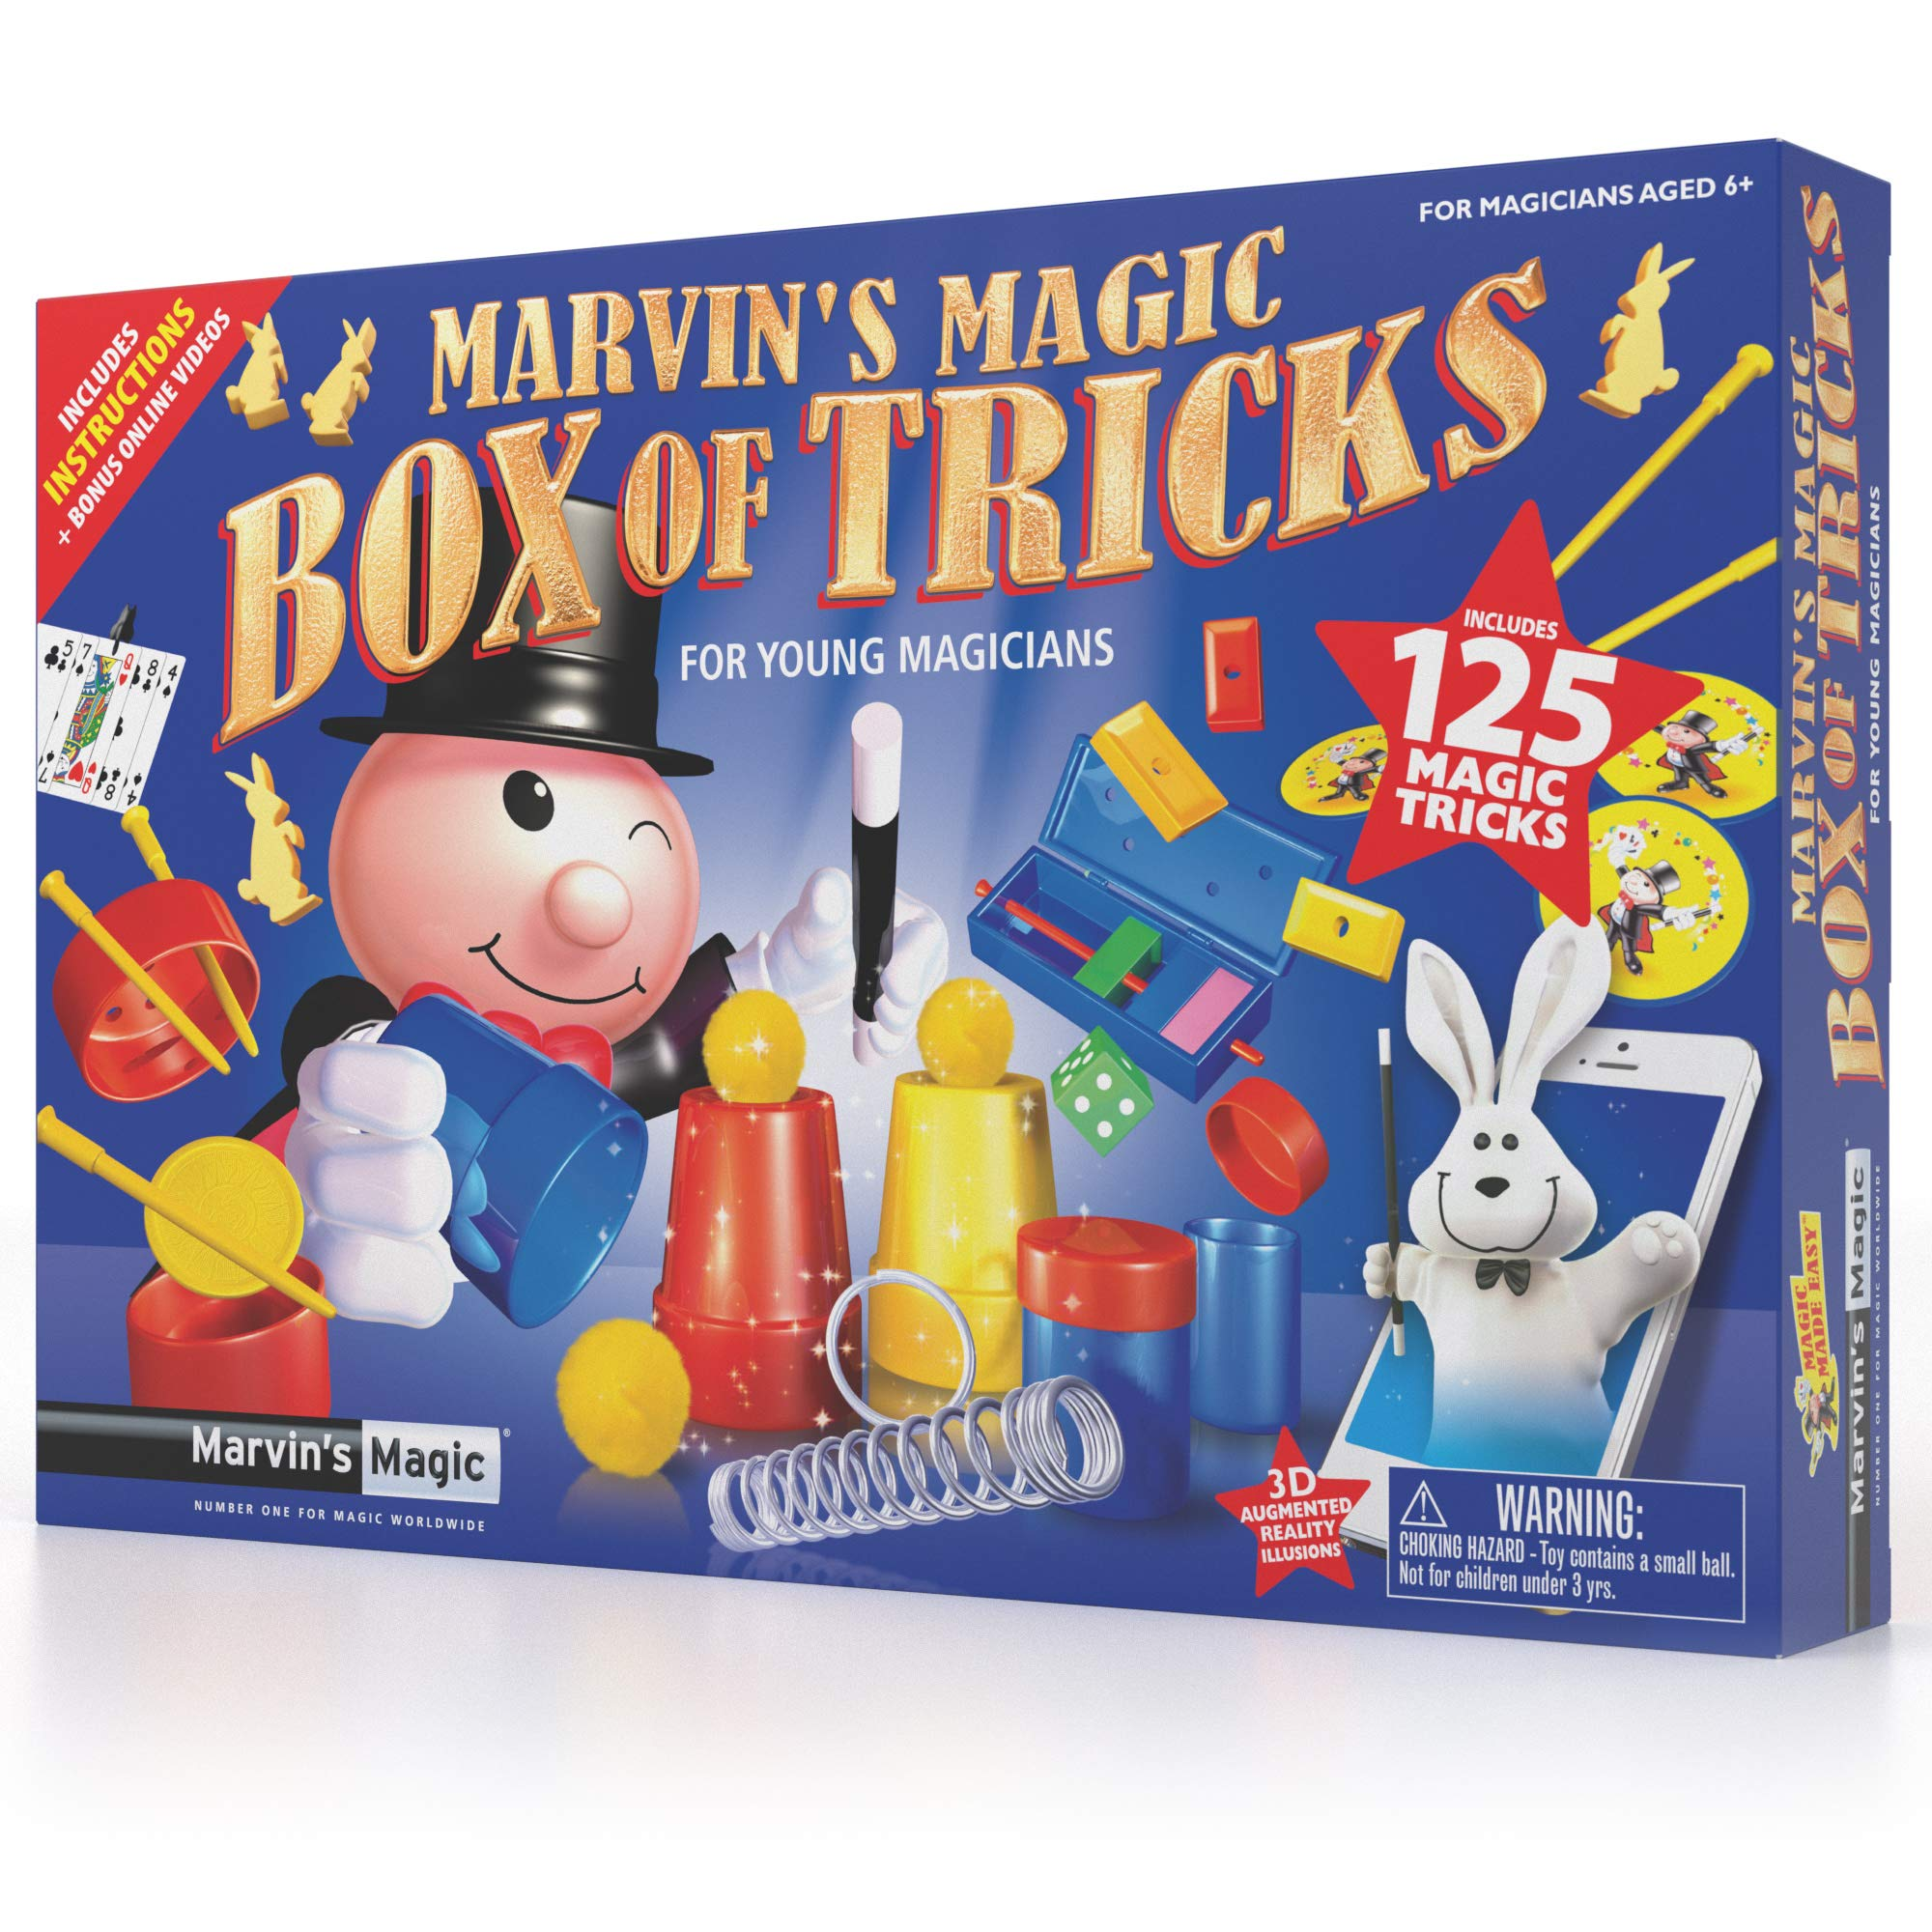 Marvin's Magic - 125 Amazing Magic Tricks for Children | Kids Magic Set | Magic Tricks for Kids Including Magic Wand, Card Tricks + Much More | Suitable for Age 6+